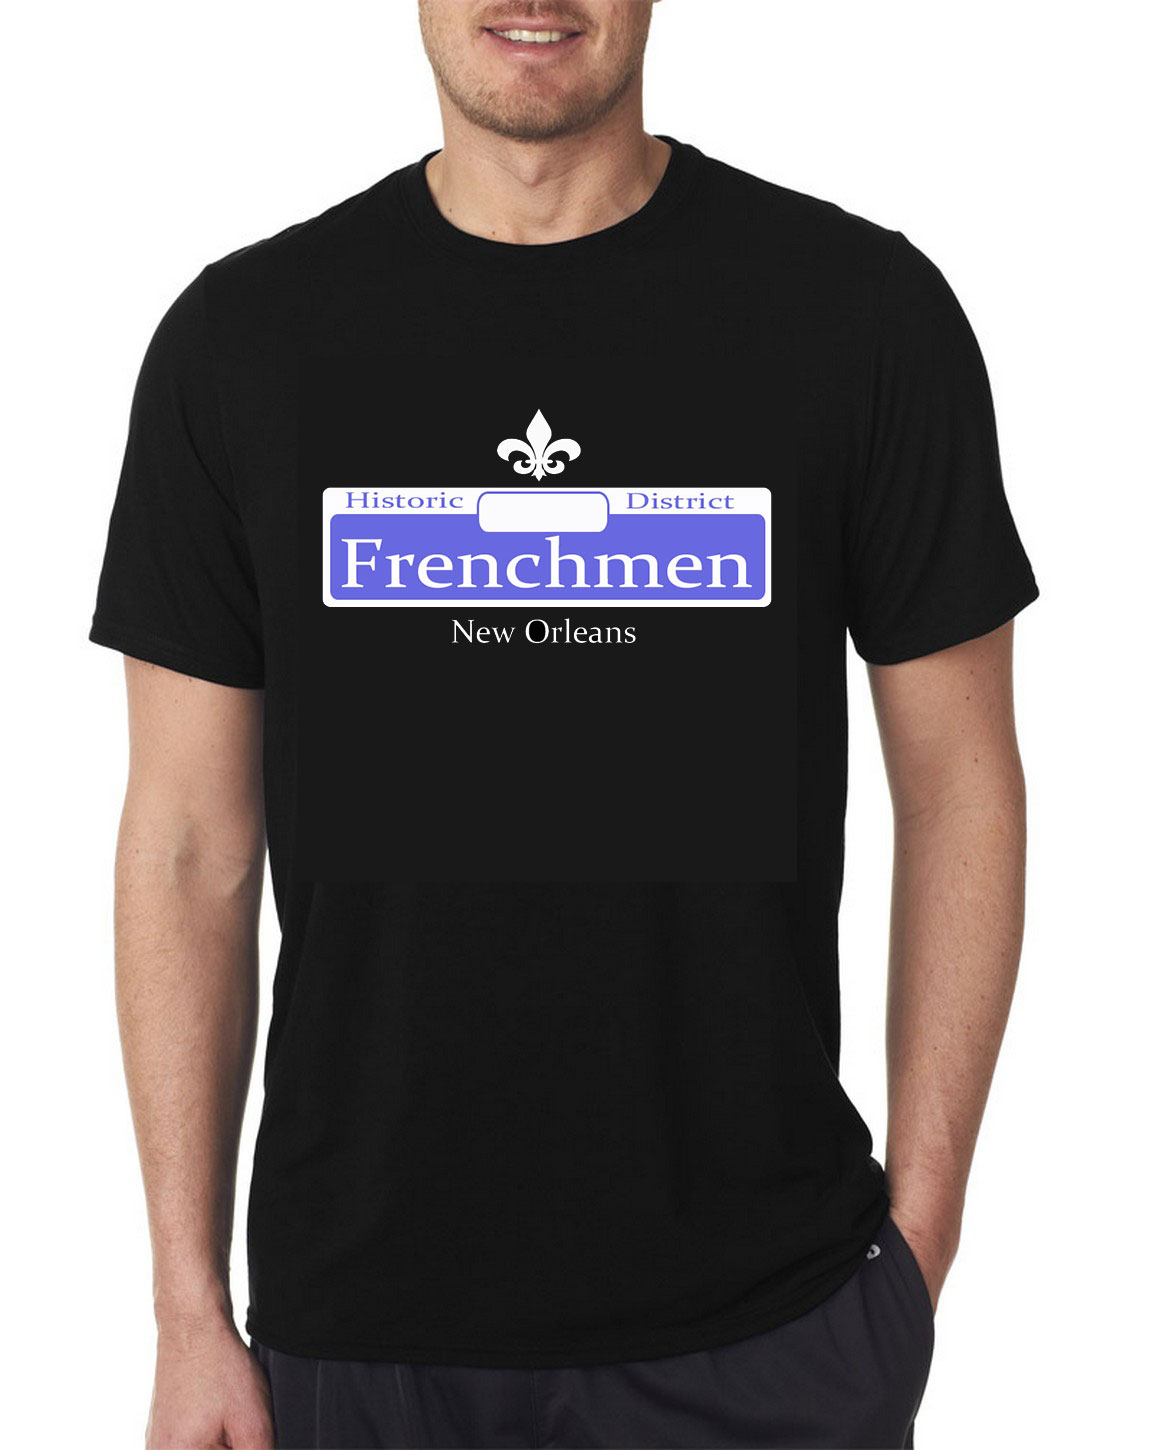 The Maison Frenchmen Street Sign T-Shirt